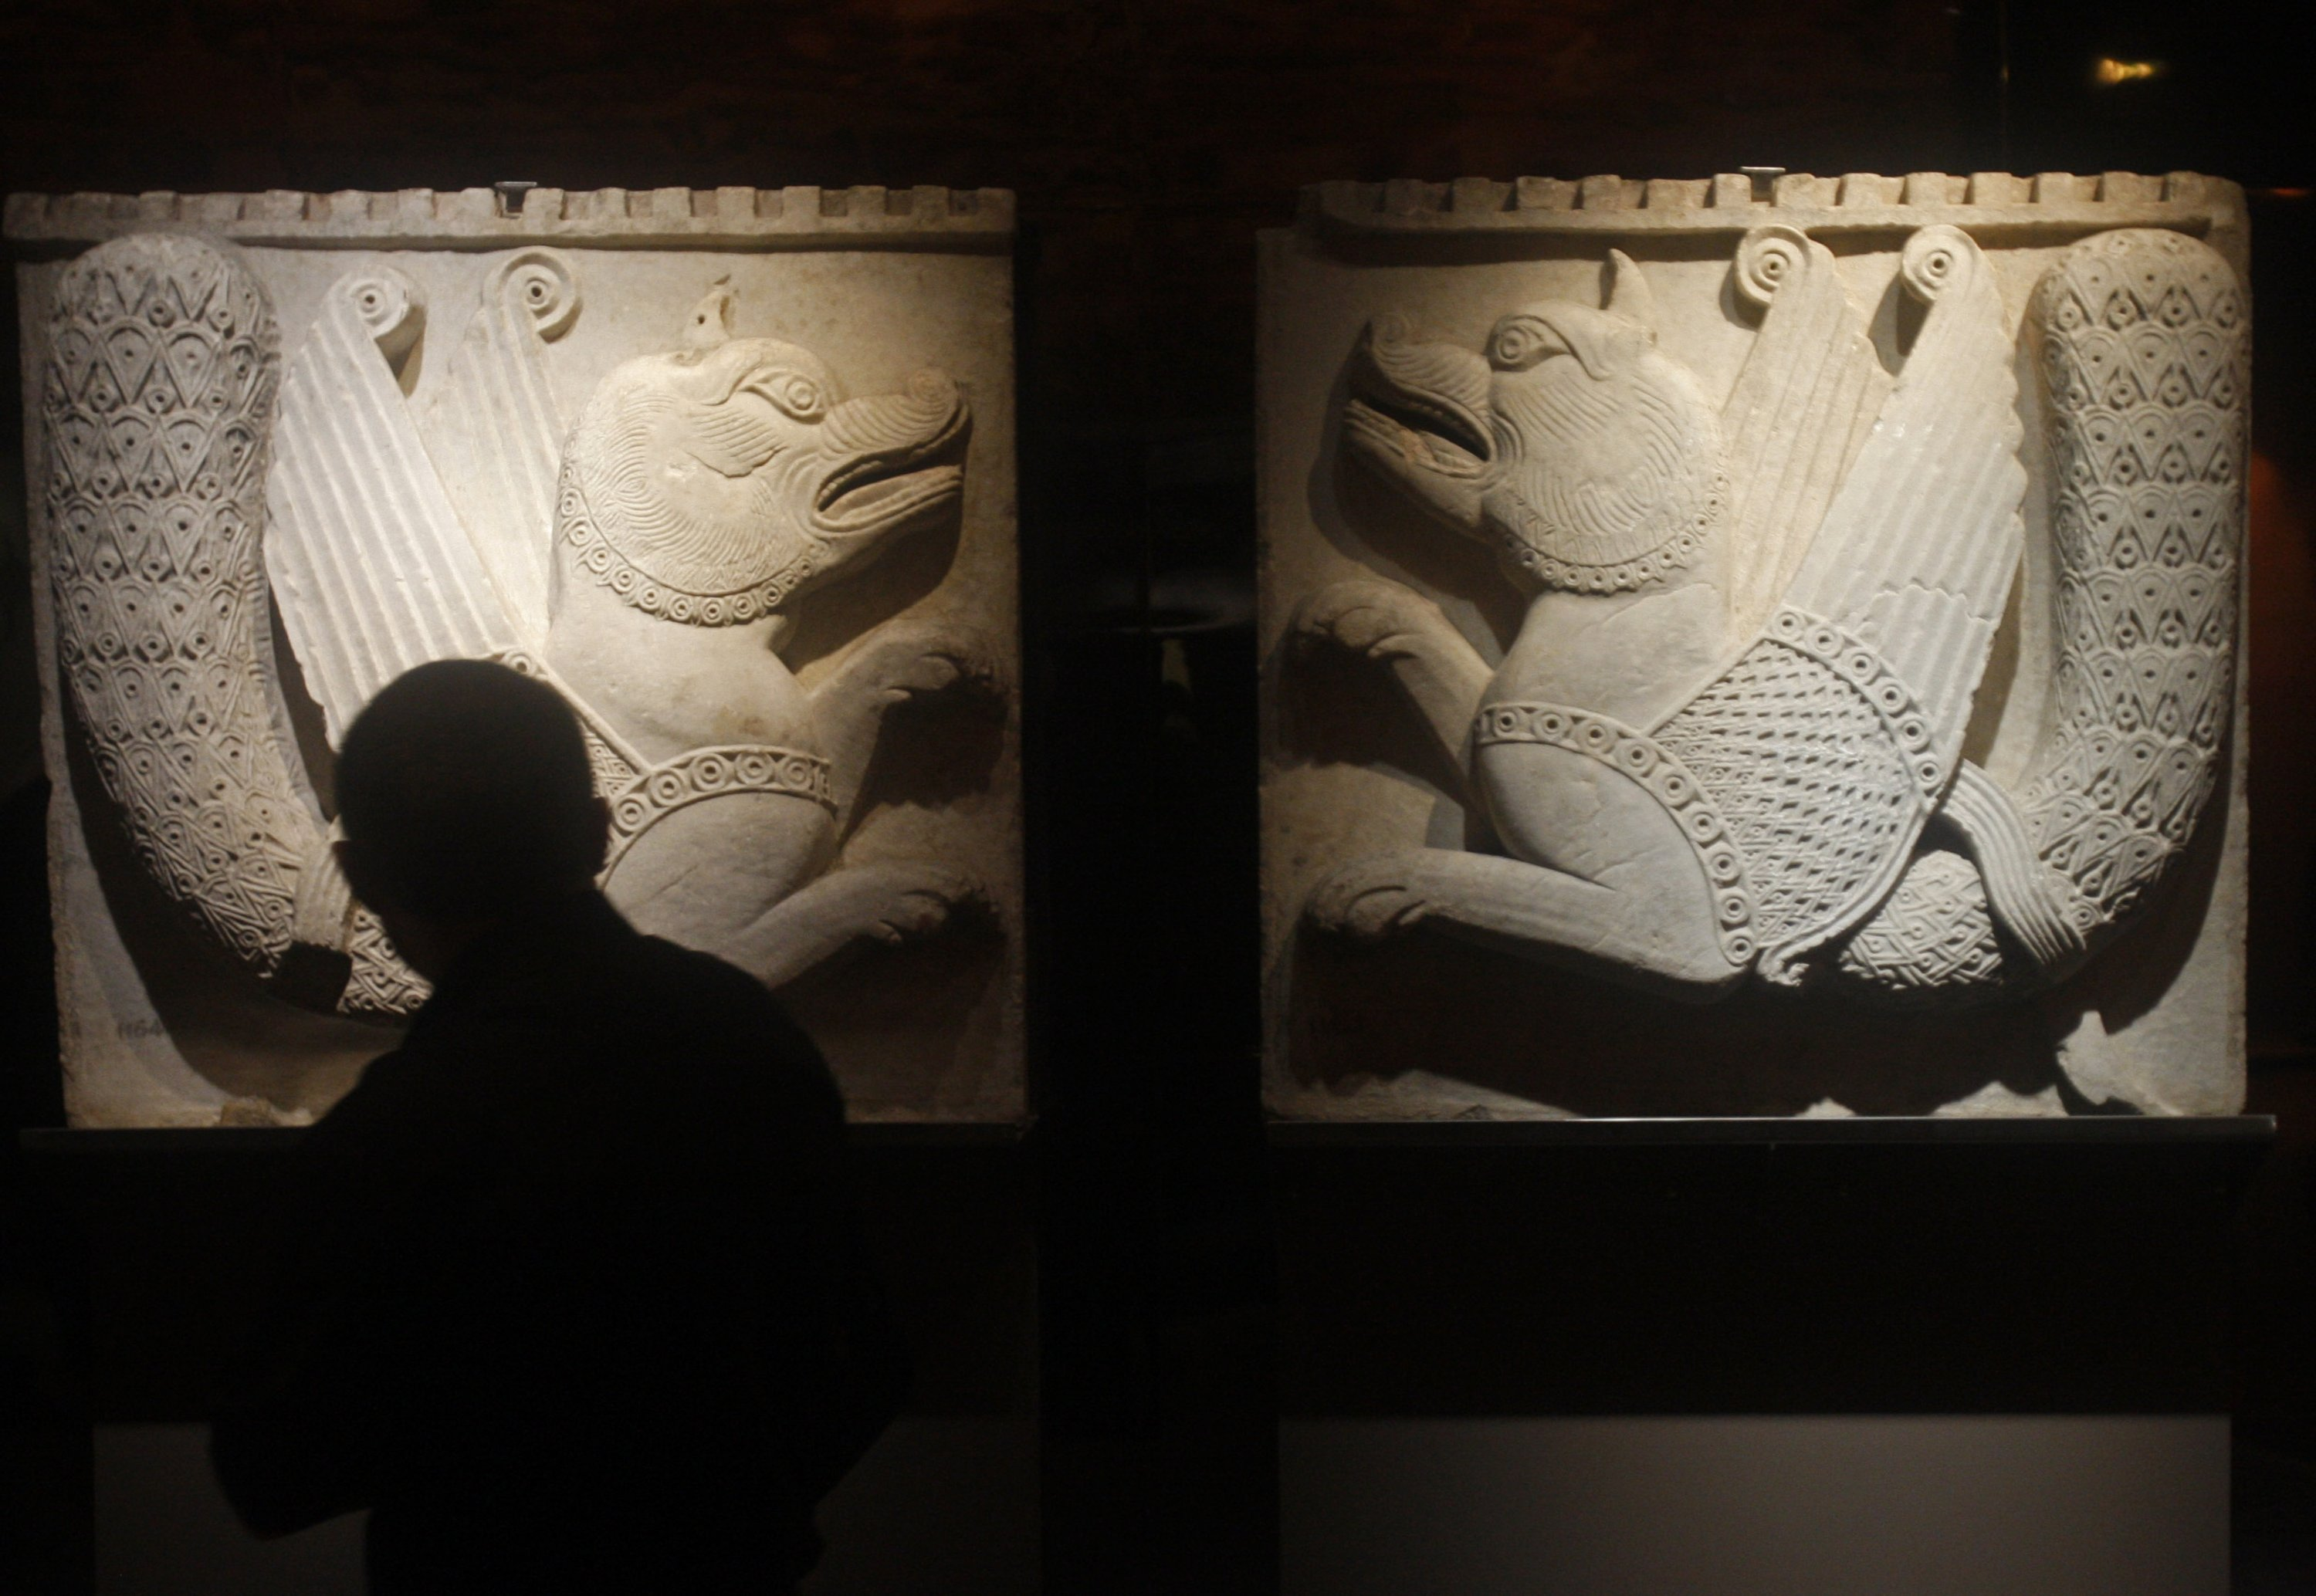 A visitor looks on two Simurgh relief, a mythical medieval creature, at the exhibition from Byzantium to Istanbul at the Grand Palais in Paris, on Oct. 21, 2009. (AP PHOTO)